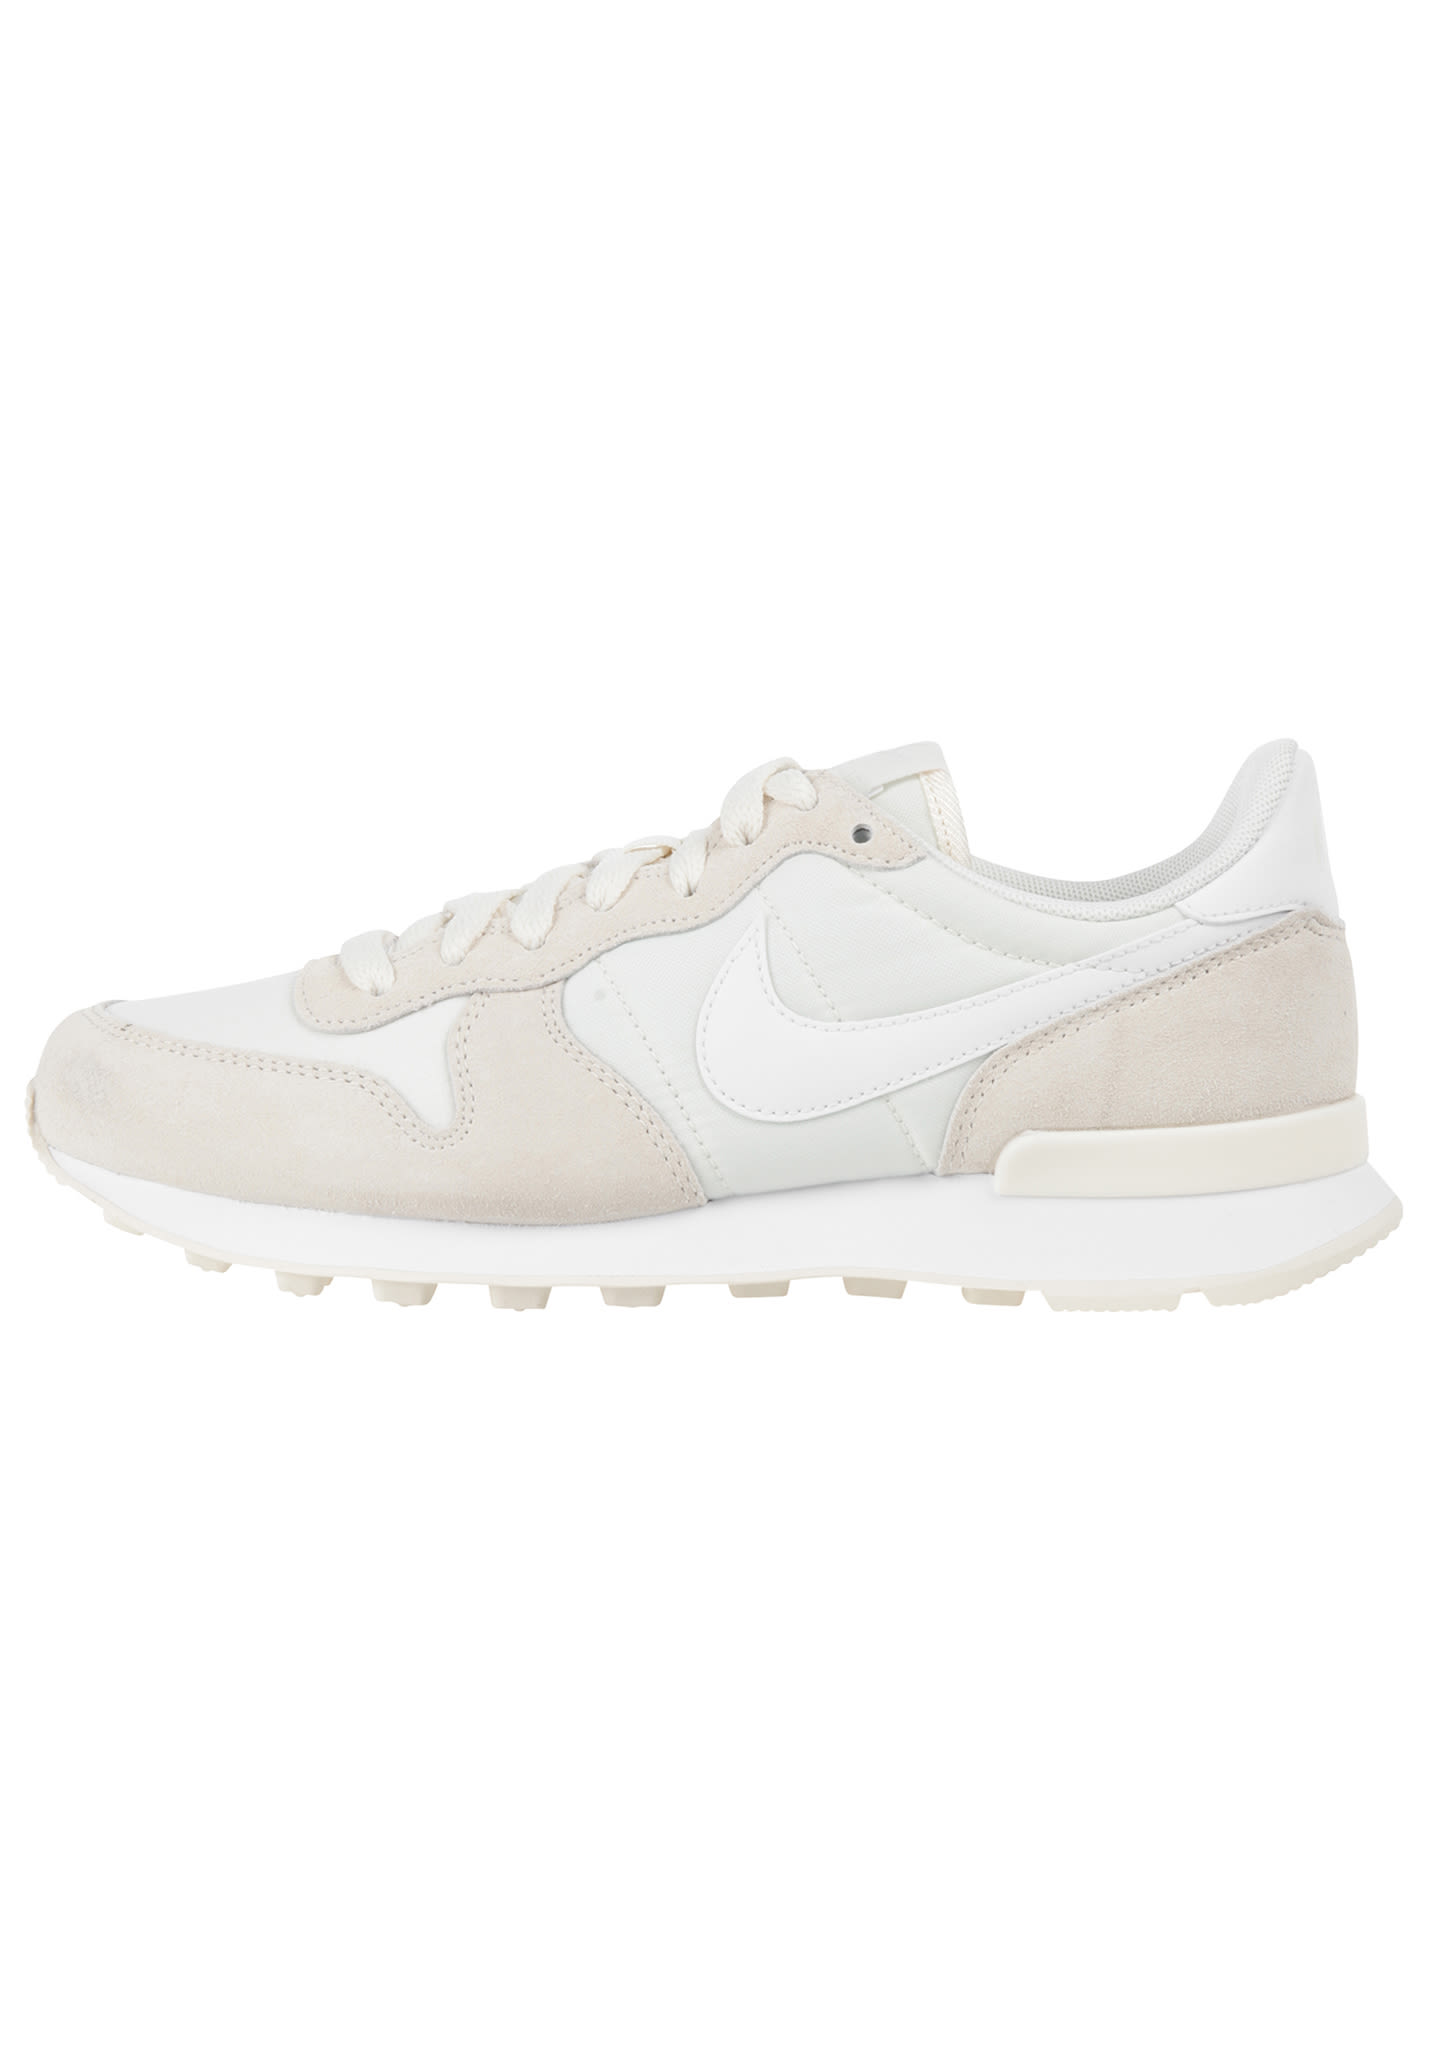 294ce8ff164753 NIKE SPORTSWEAR Internationalist - Sneaker für Damen - Weiß - Planet Sports